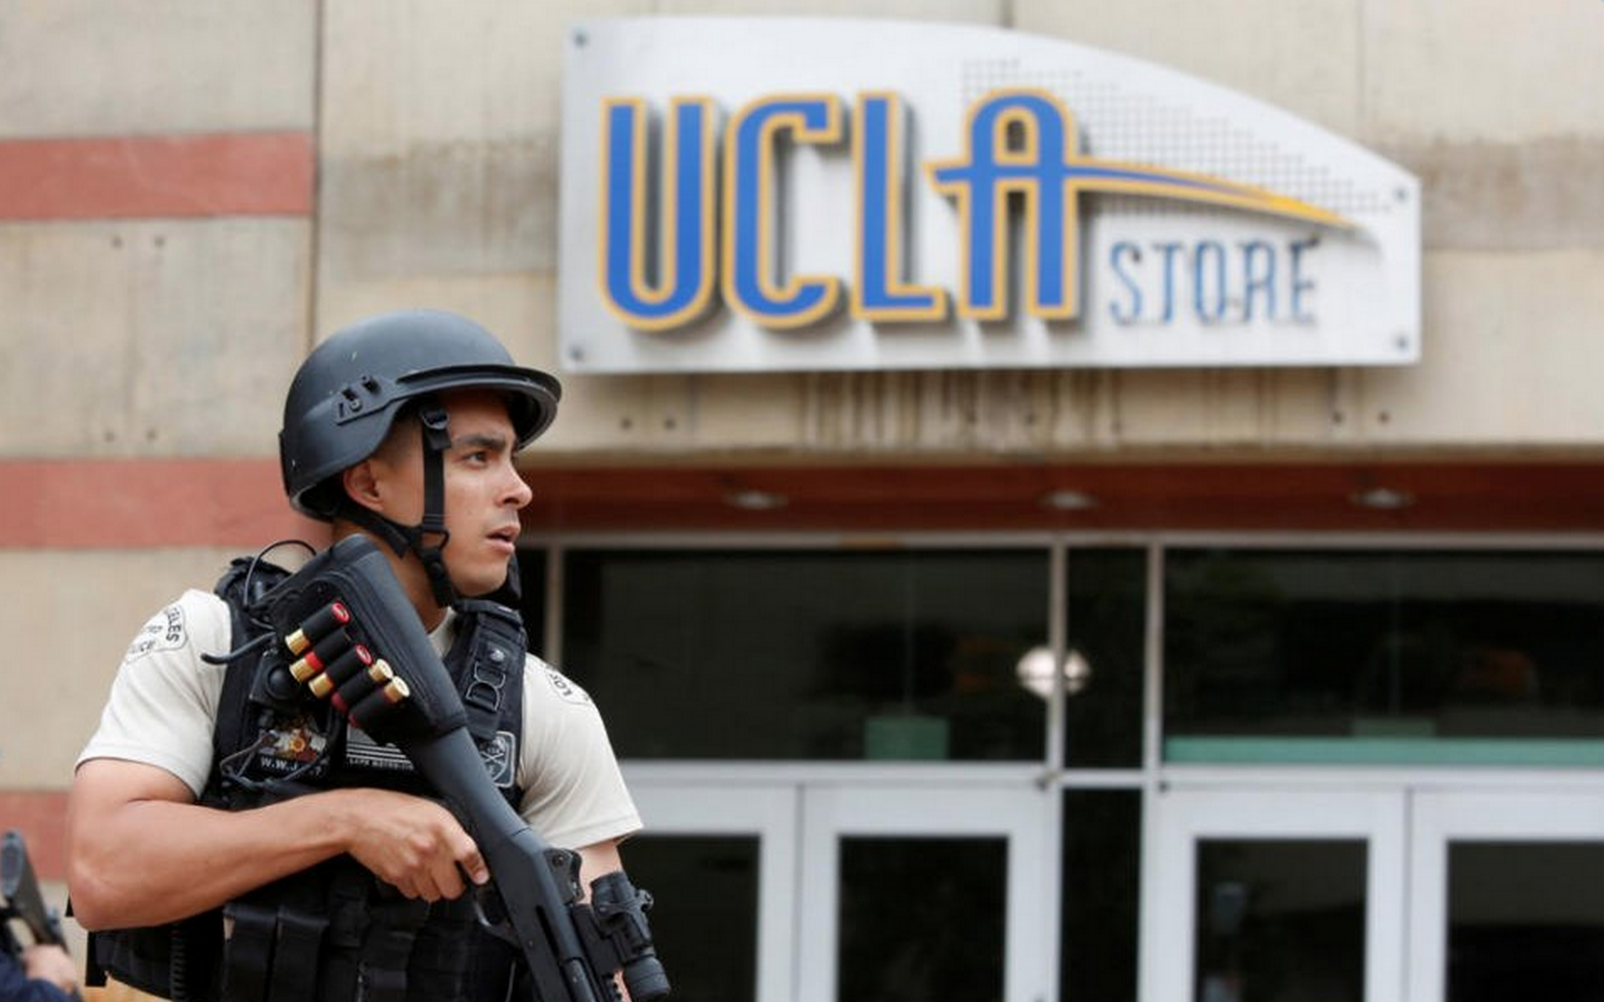 NEW: Woman on UCLA shooter's